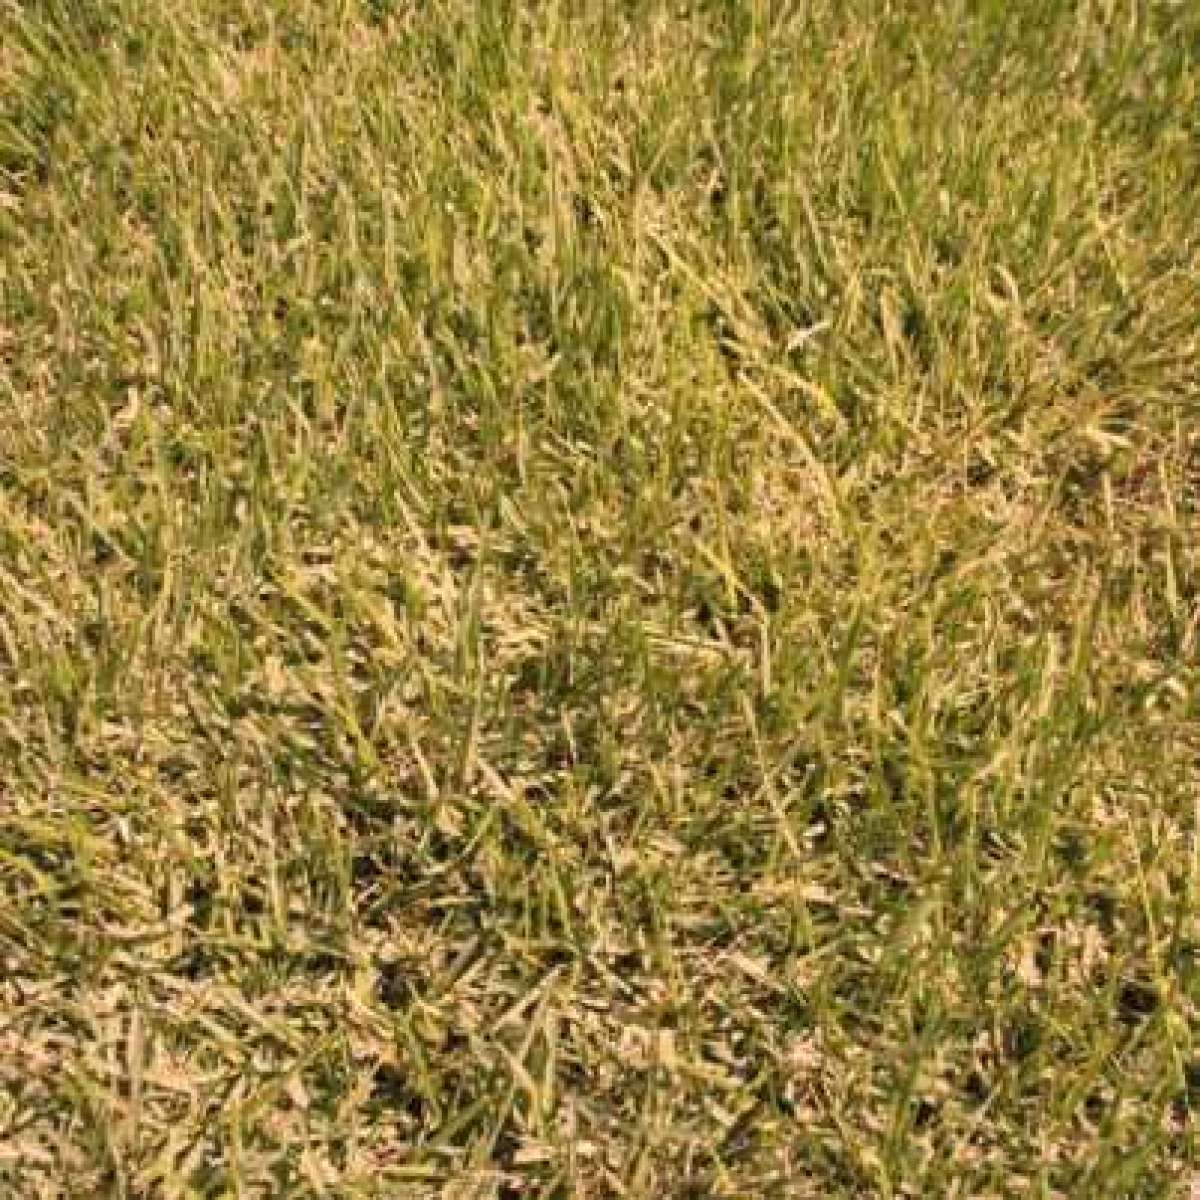 Alkaline Lawn Soils - Adjusting pH in Alkaline Lawns